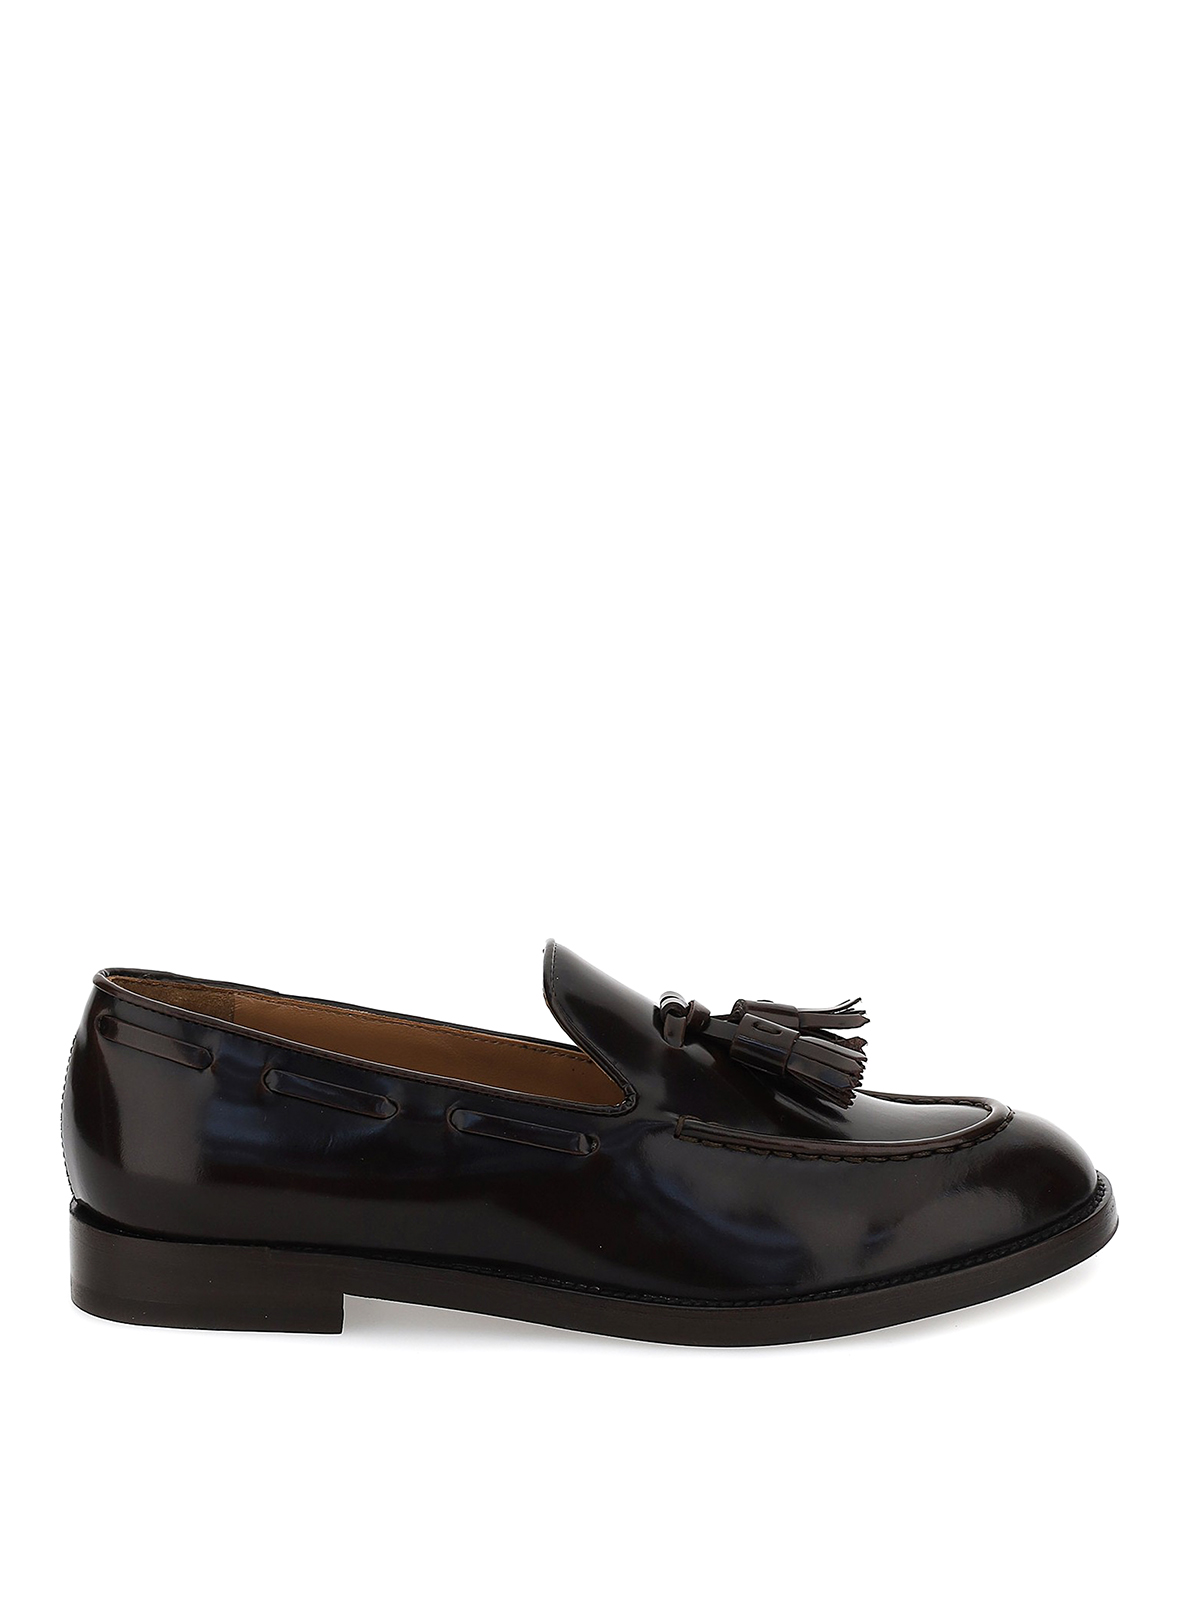 Fratelli Rossetti BRUSHED LEATHER LOAFERS